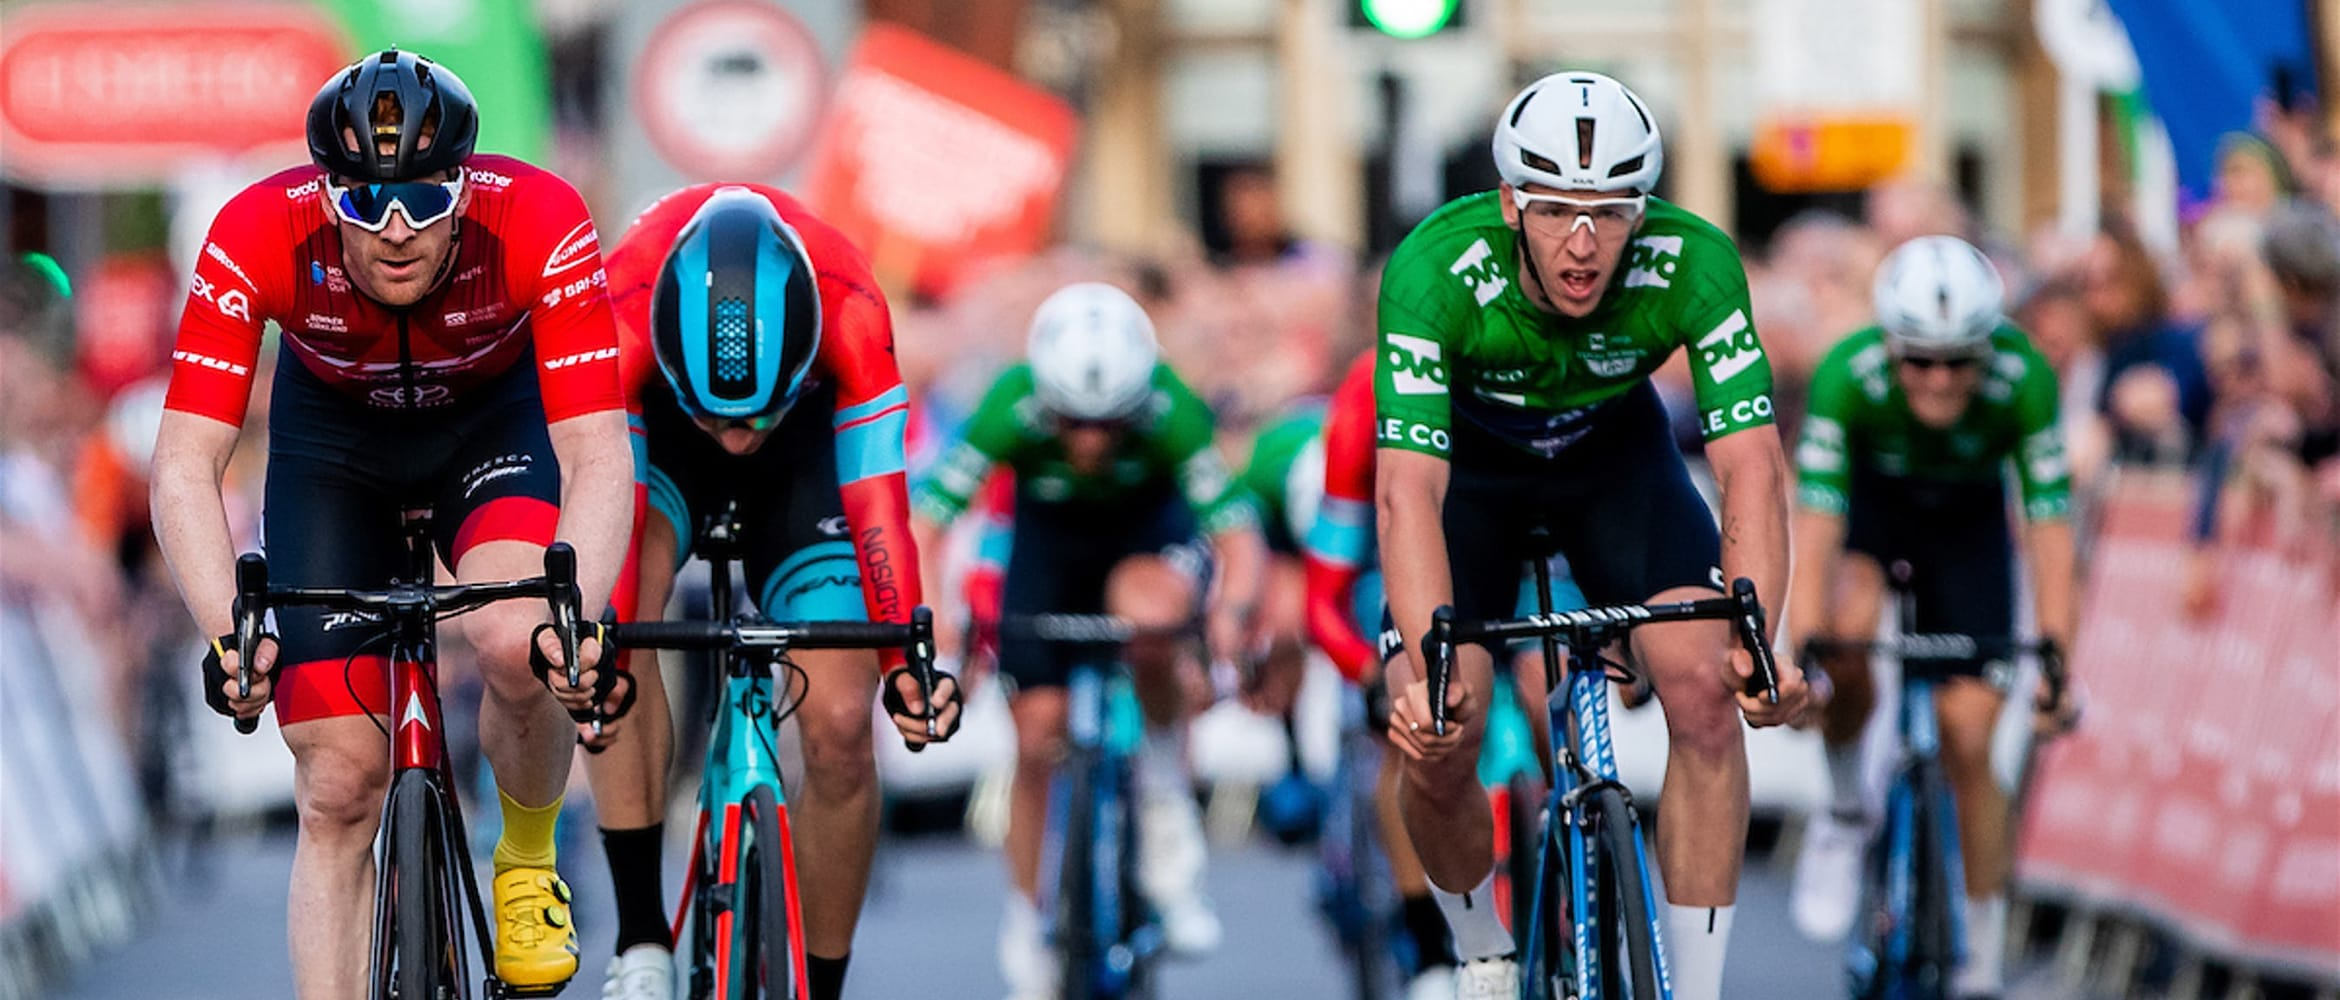 Cyclist Ed Clancy approaching the finish line